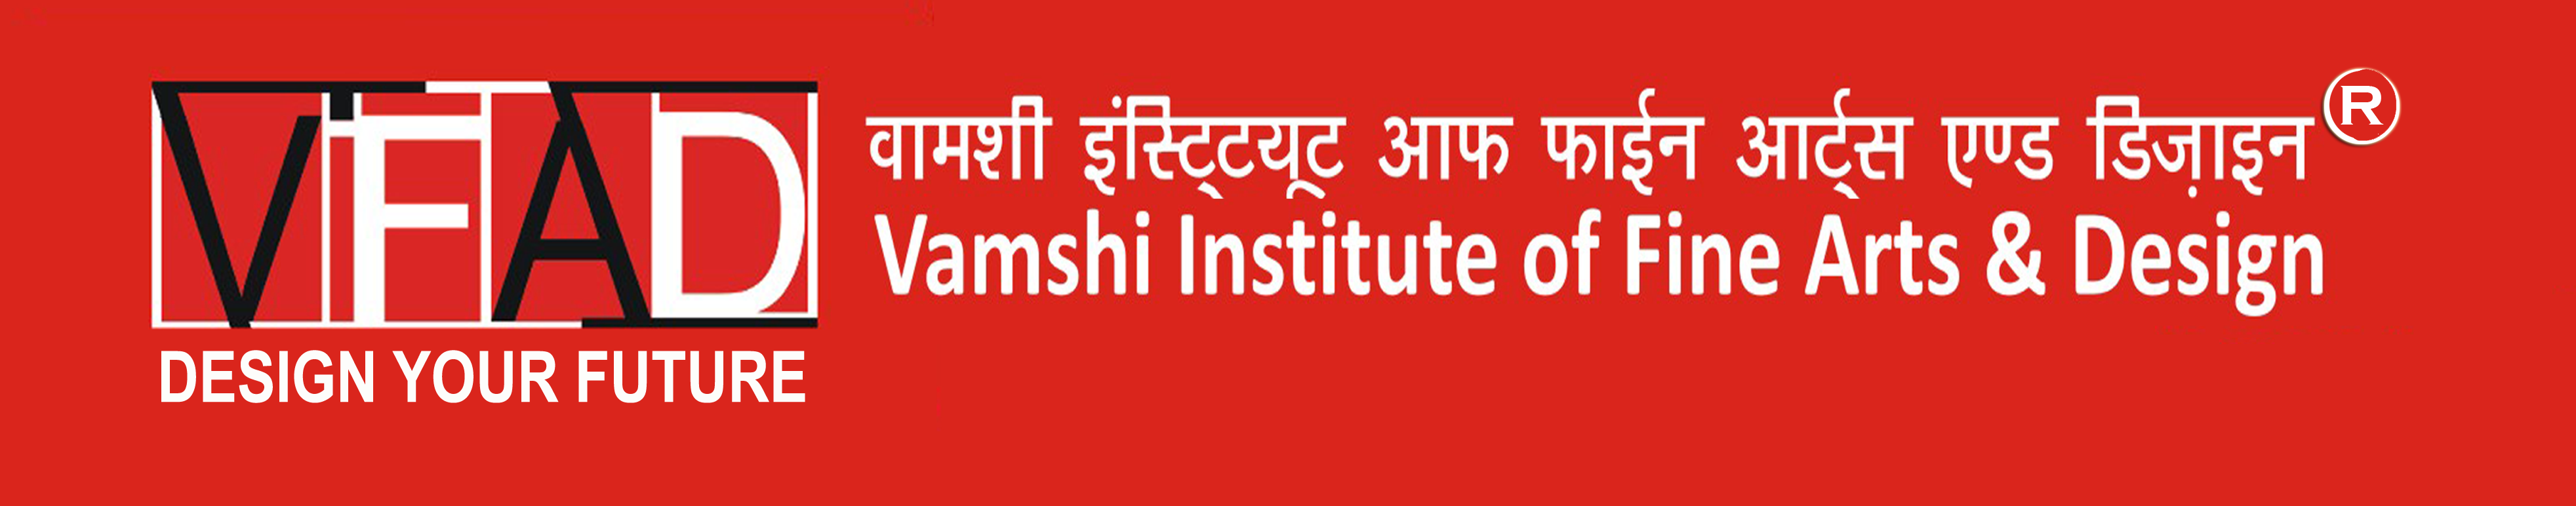 Vamshi Institute Of Fine Arts & design